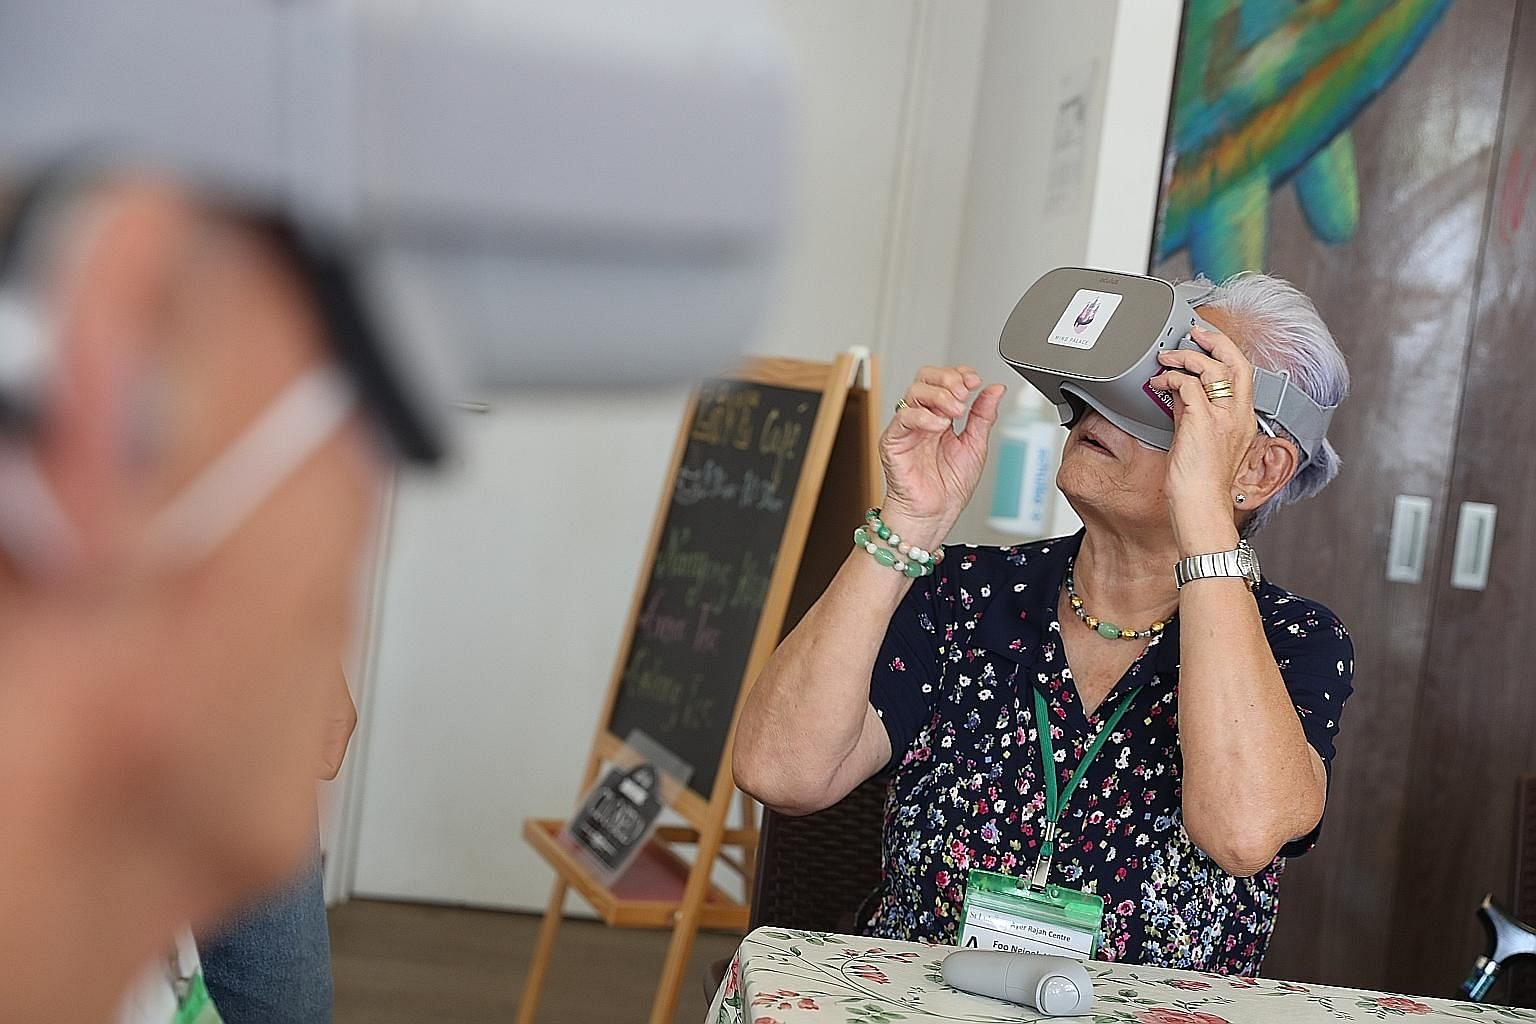 Senior citizens at St Luke's ElderCare Ayer Rajah Centre using virtual reality (VR) headsets. VR aids are said to improve the memory recall and attention span of dementia patients. They can also be used to help elderly residents with mobility constra